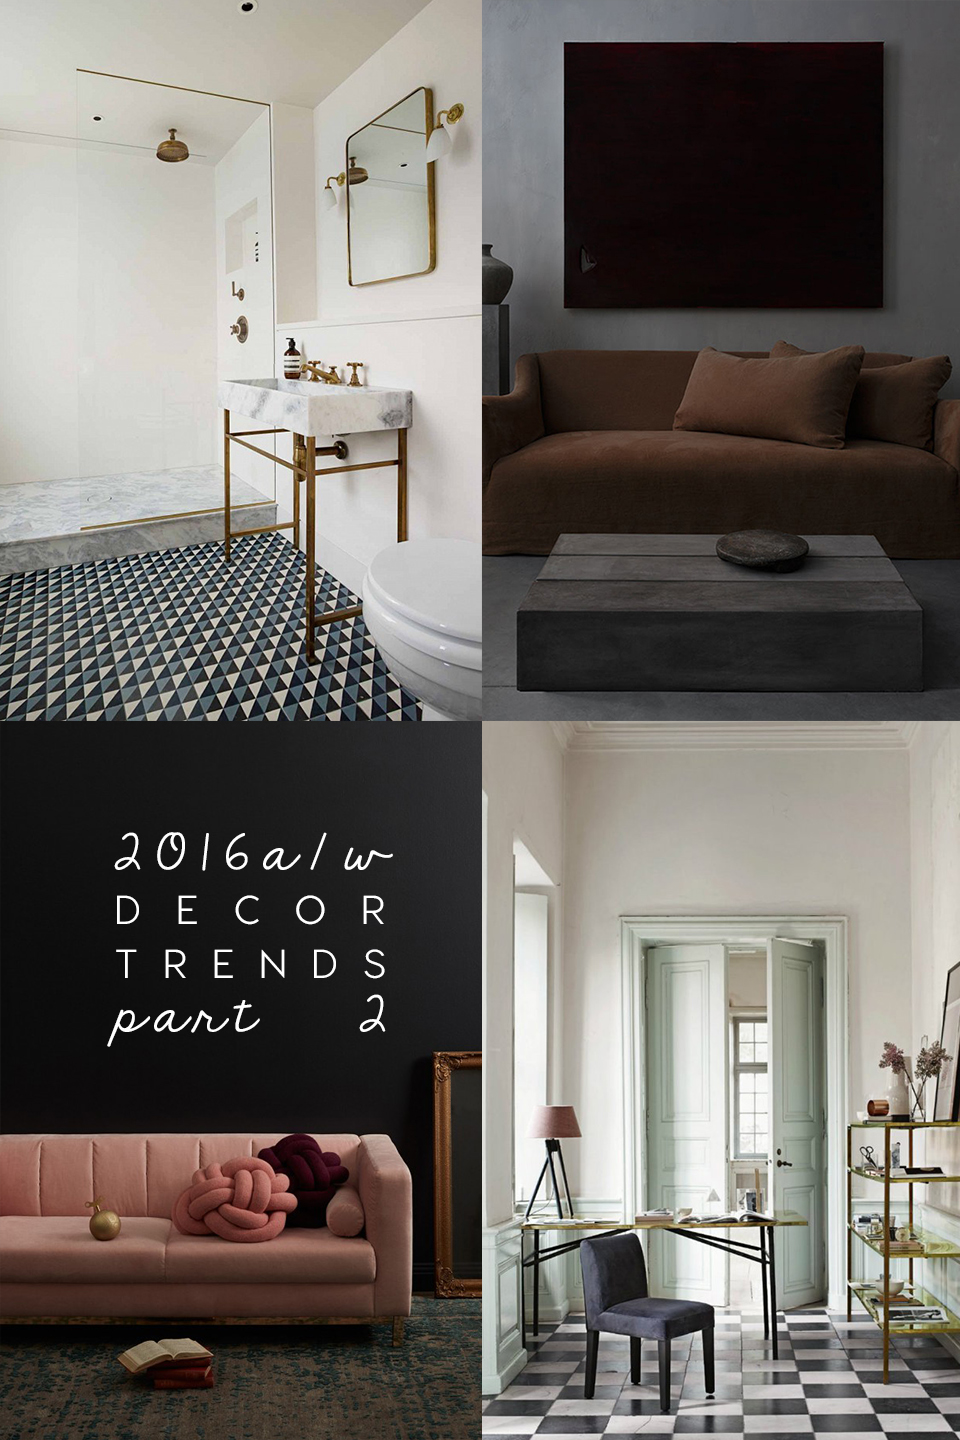 the hottest home trends for this autumn winter 2016 to